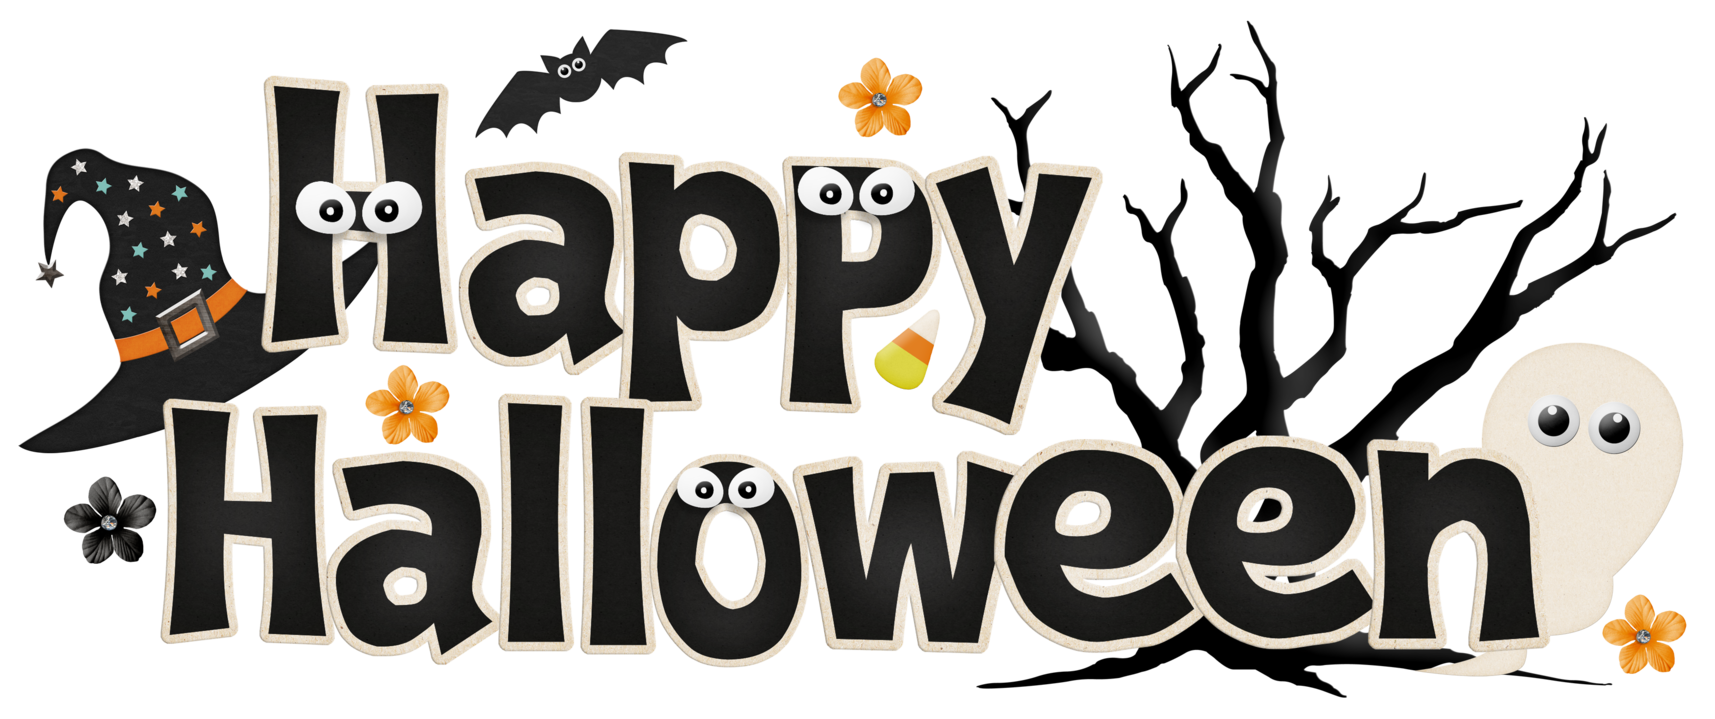 Halloween sign clipart clipart library stock Month of october clipart free clipart images clipartwiz 2 clipartix ... clipart library stock